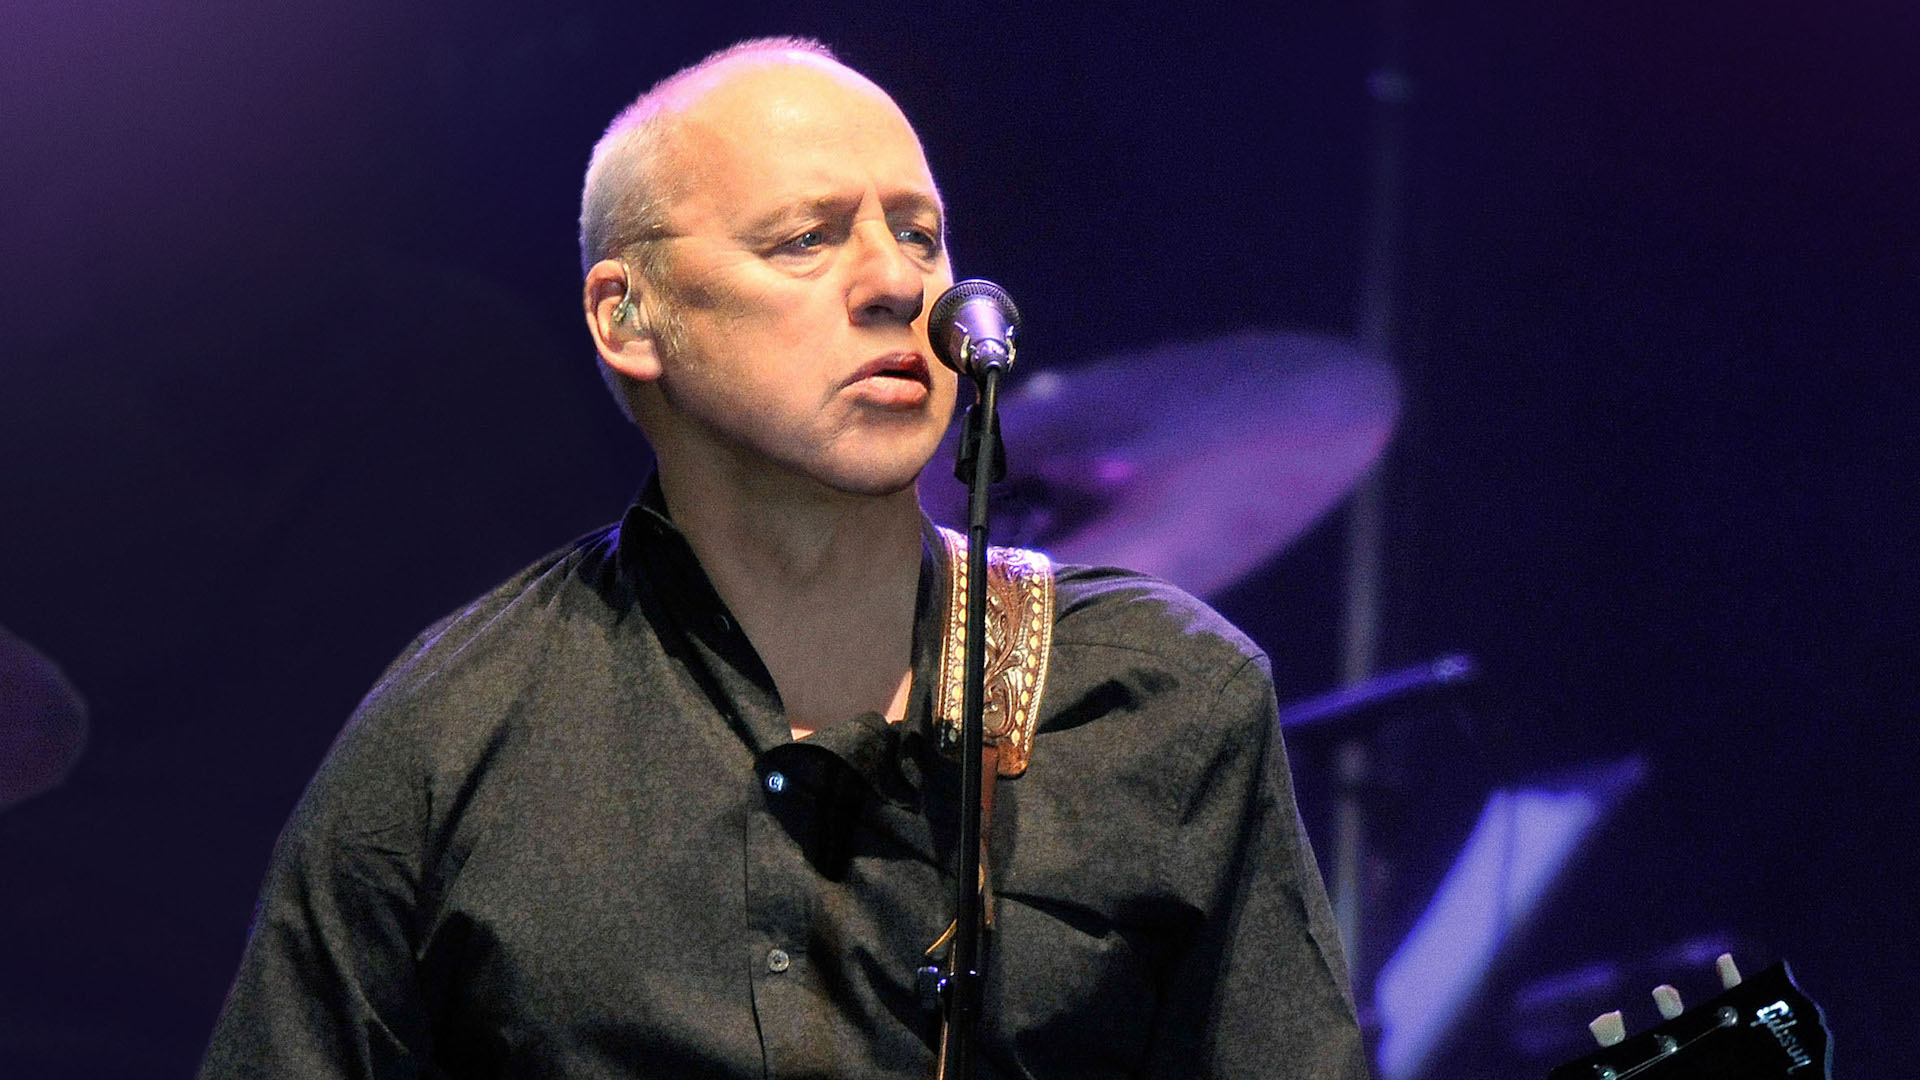 Tickets for Mark Knopfler in Budapest from FUNCODE